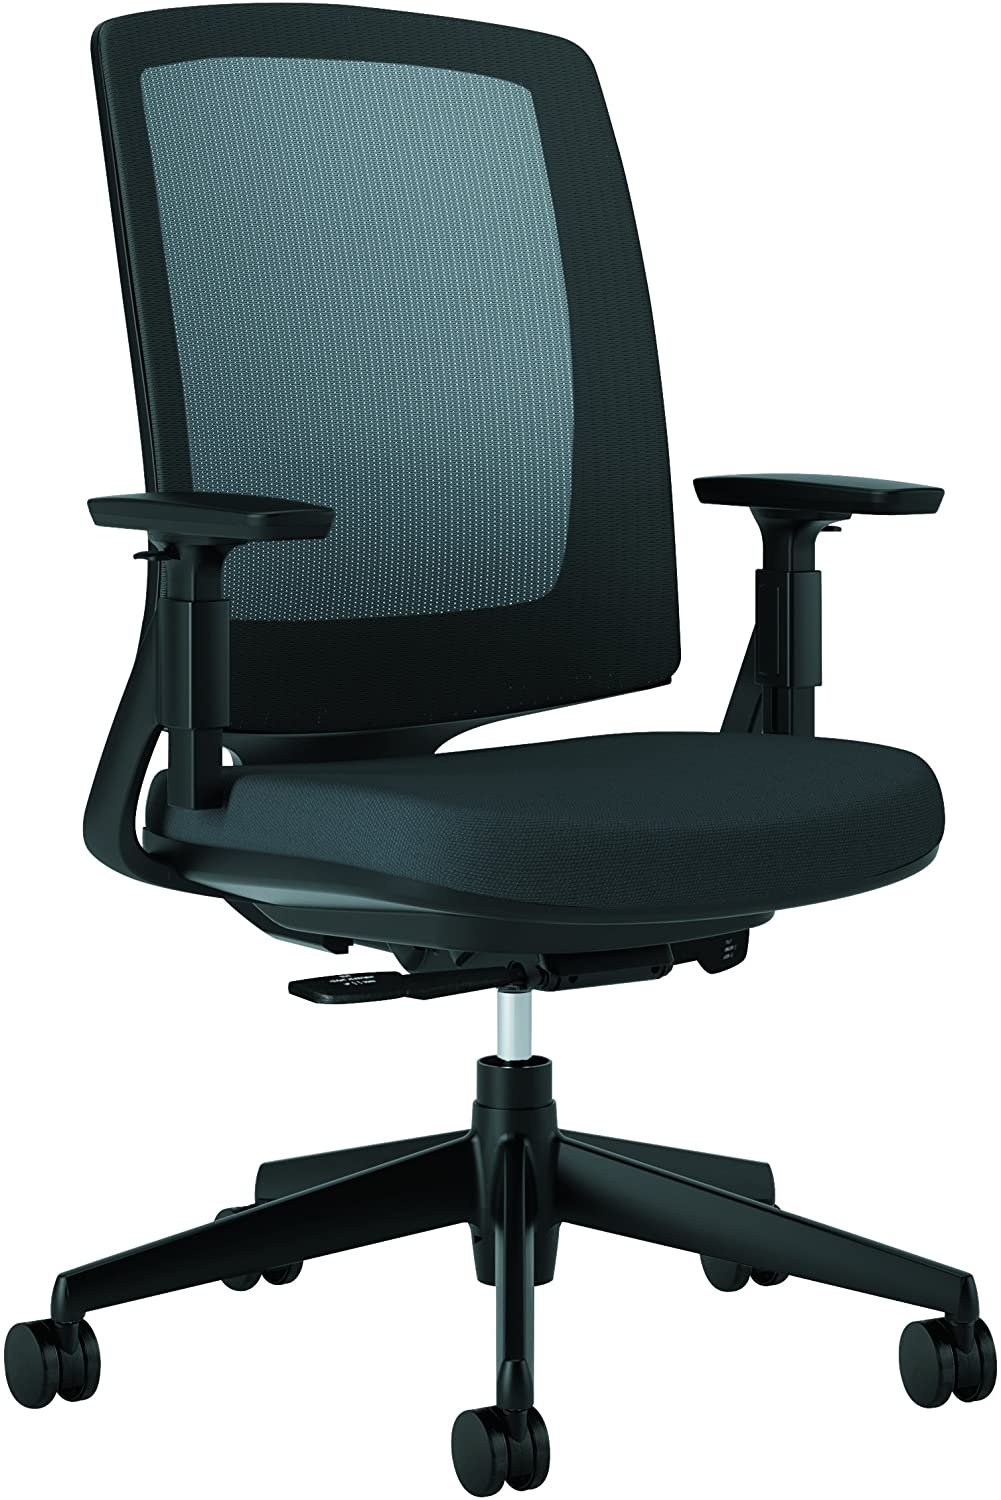 HON HON2281VA10T Lota Office Chair - Mid Back Mesh Desk Chair or Conference Room Chair, Black (H2281)